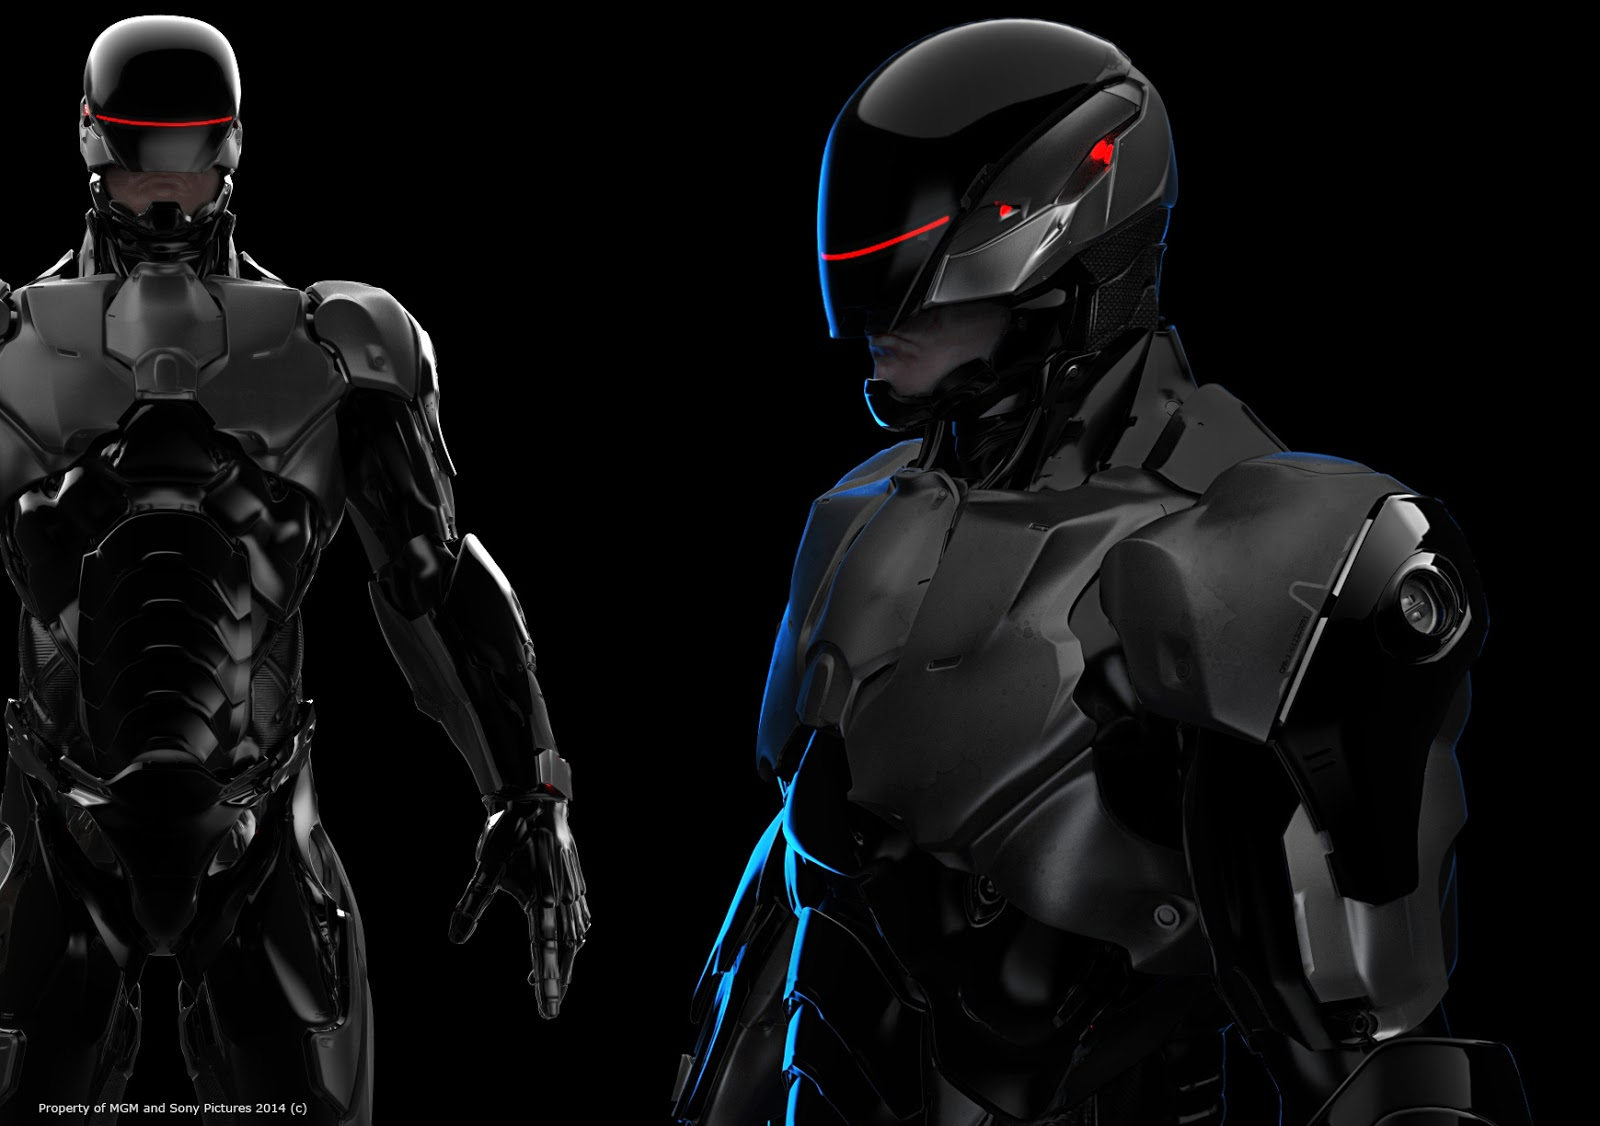 awesome robocop 2014 armor and weapons concept art by